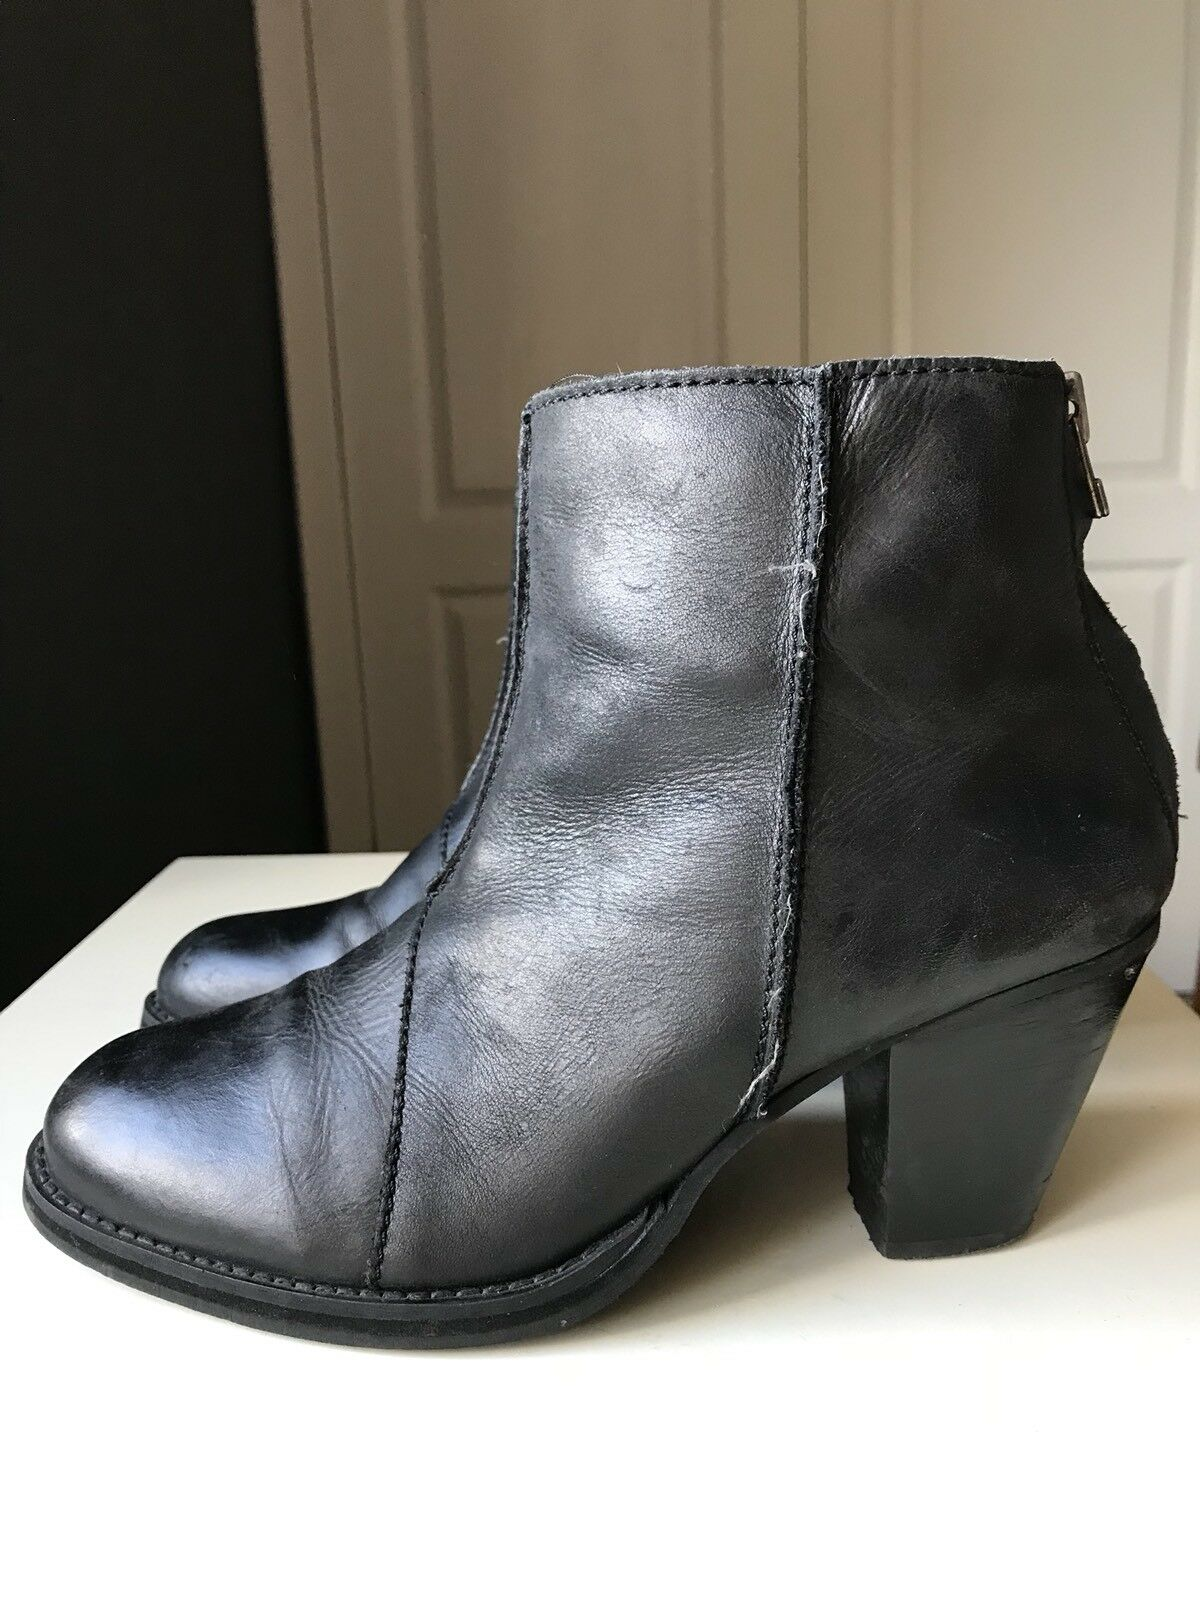 NEXT Designer Black Leather Women Ladies Ankle High Heel shoes Boot Size 6 39